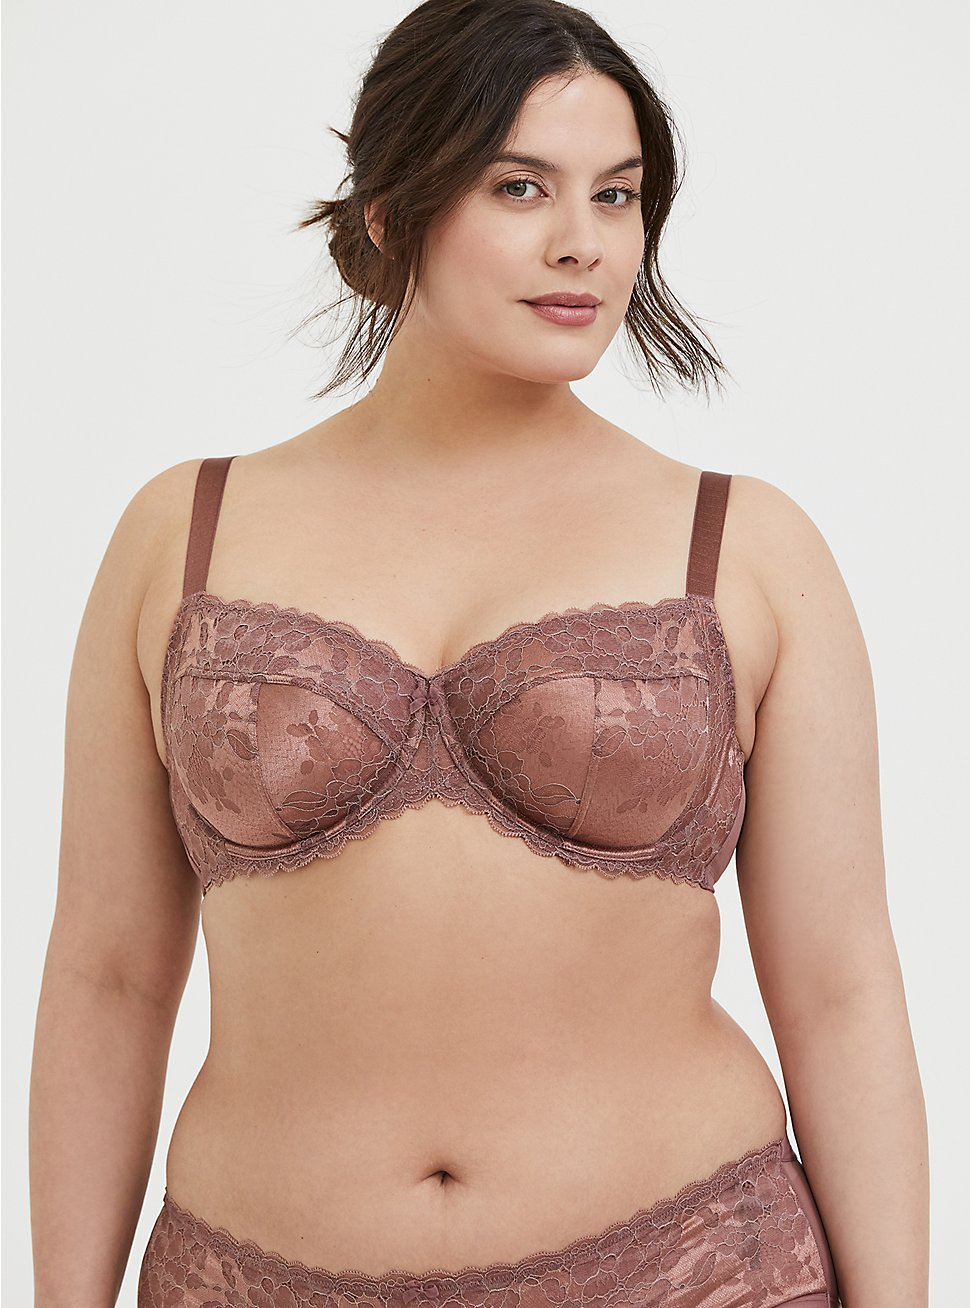 Plus Size Walnut Lace Unlined Full Coverage Bra, , hi-res